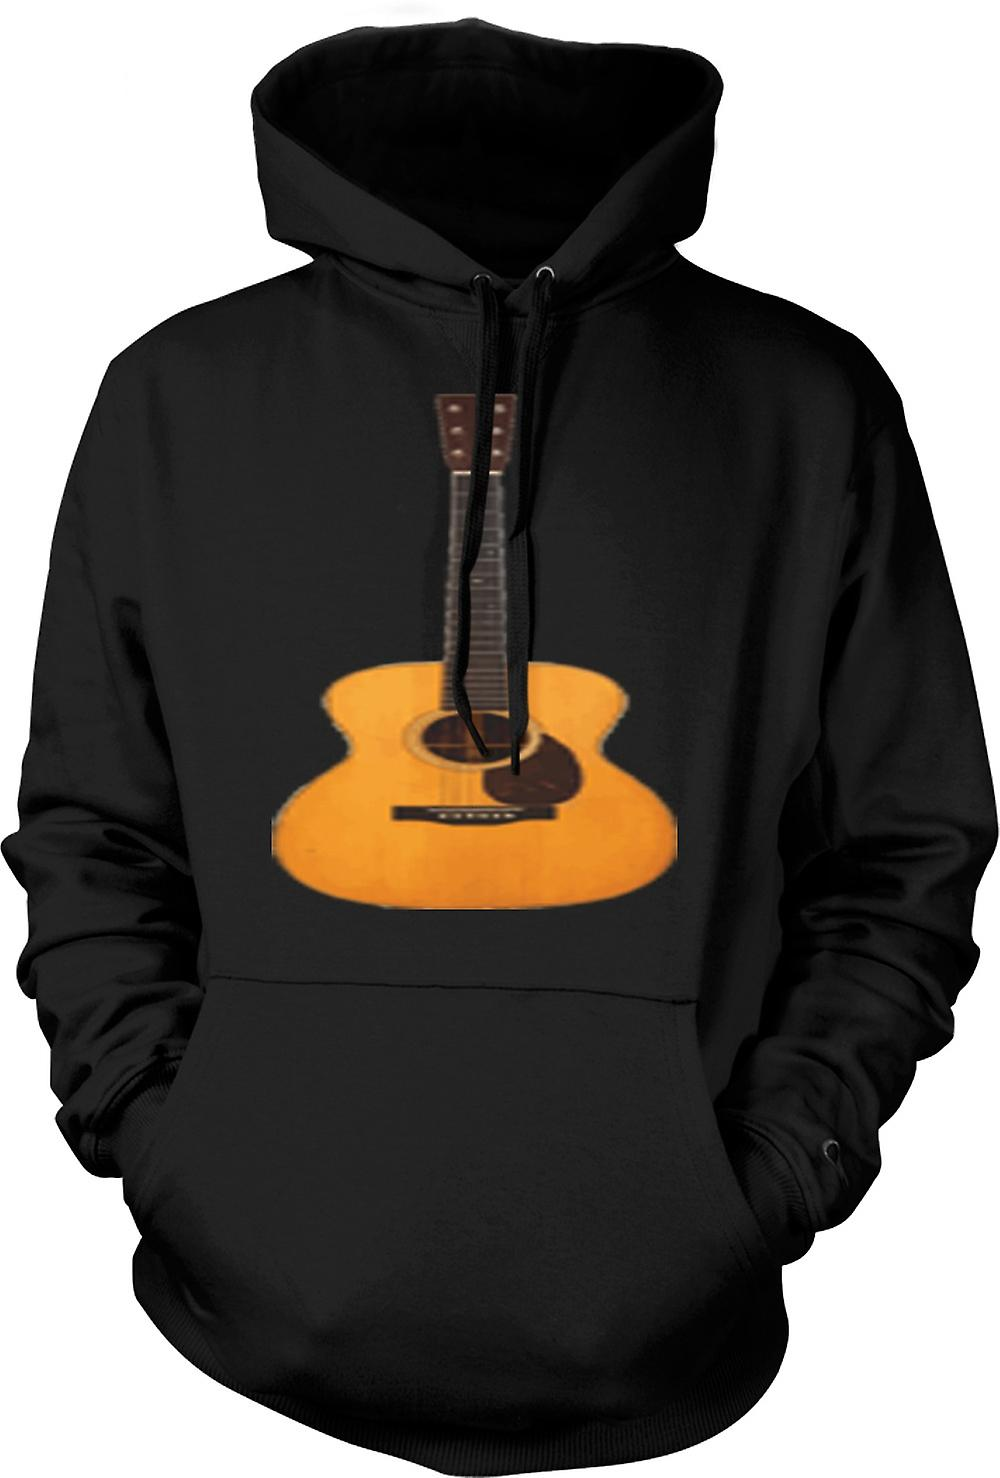 Mens Hoodie - Acoustic Guitar Rock & Roll